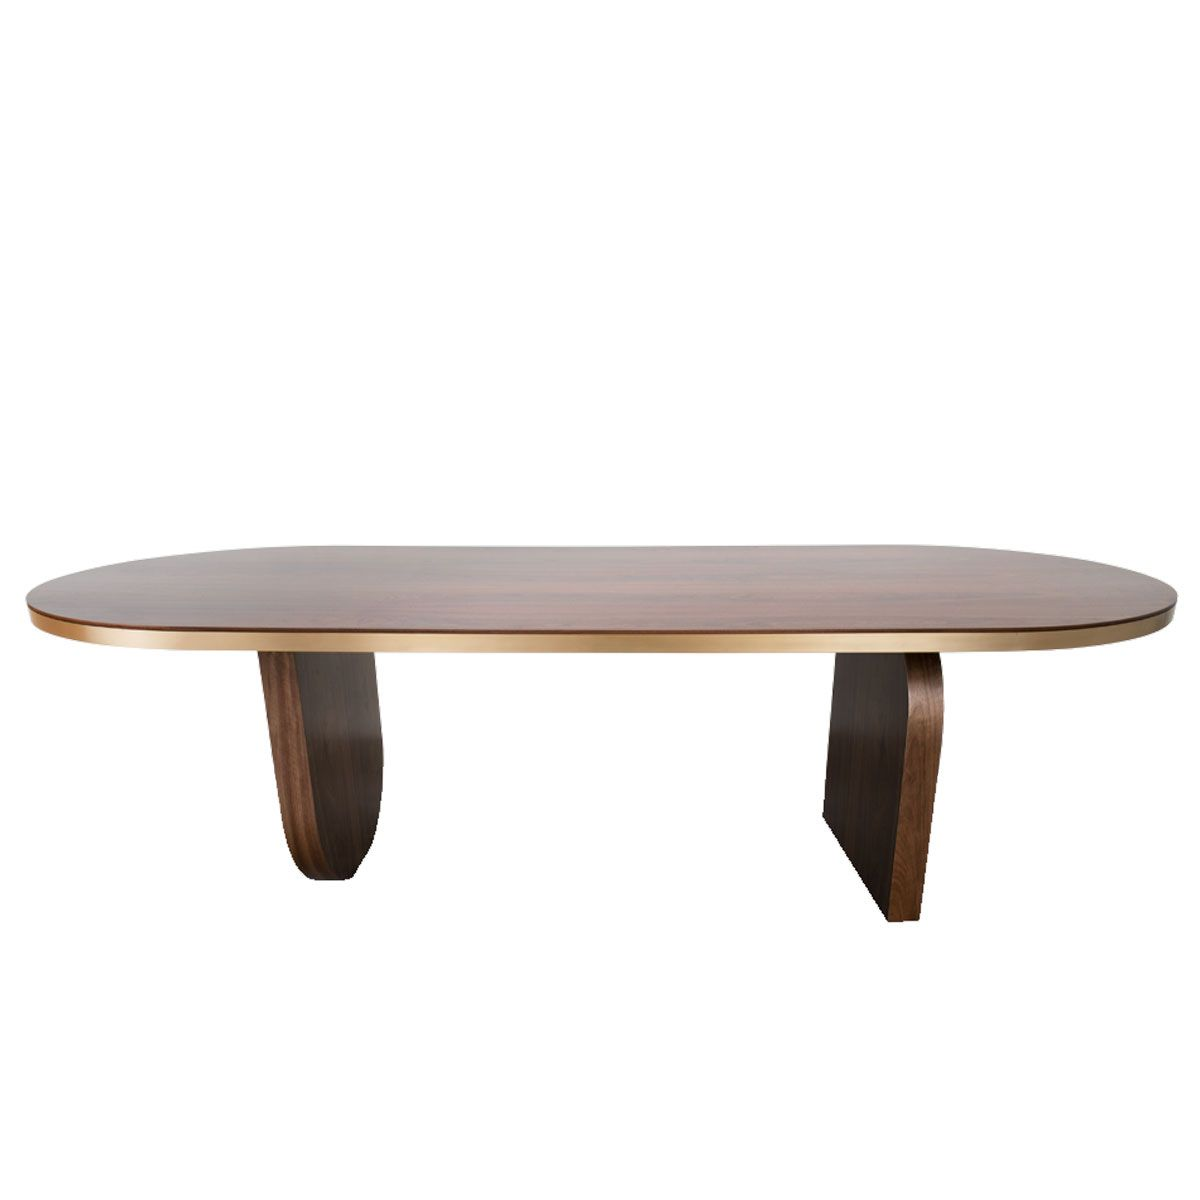 luxury tables Luxury Tables: Special Discounts Only This Week! 6 26